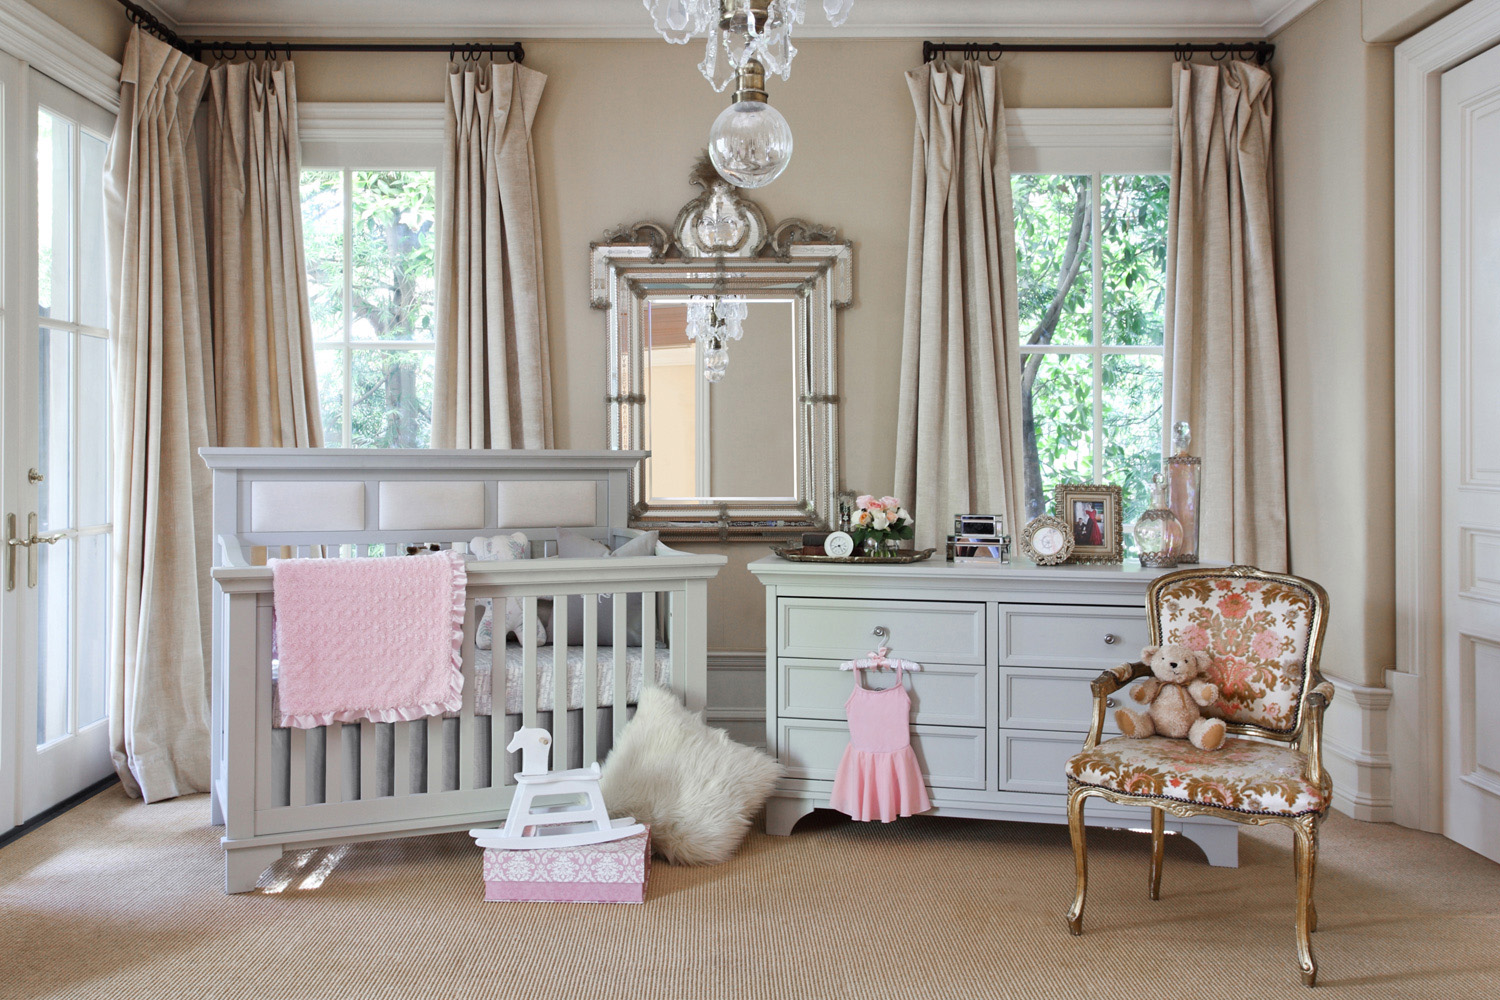 Baby Room Decor For Boys Childs Bedroom